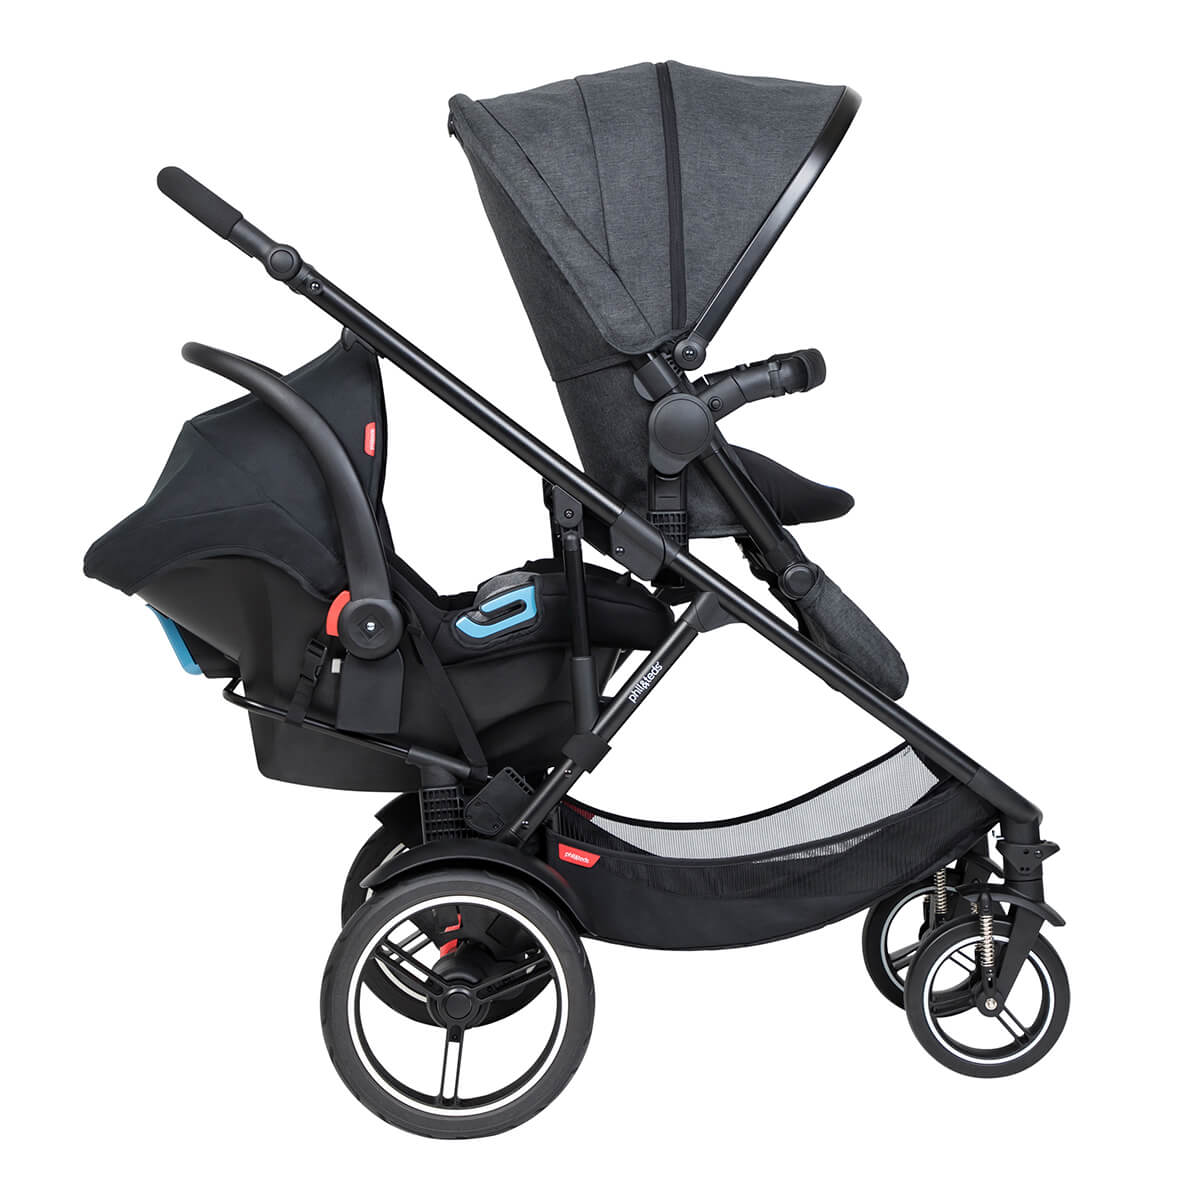 https://cdn.accentuate.io/4509867573345/19793939726506/philteds-voyager-buggy-in-forward-facing-mode-with-travel-system-in-the-rear-v1626485379889.jpg?1200x1200